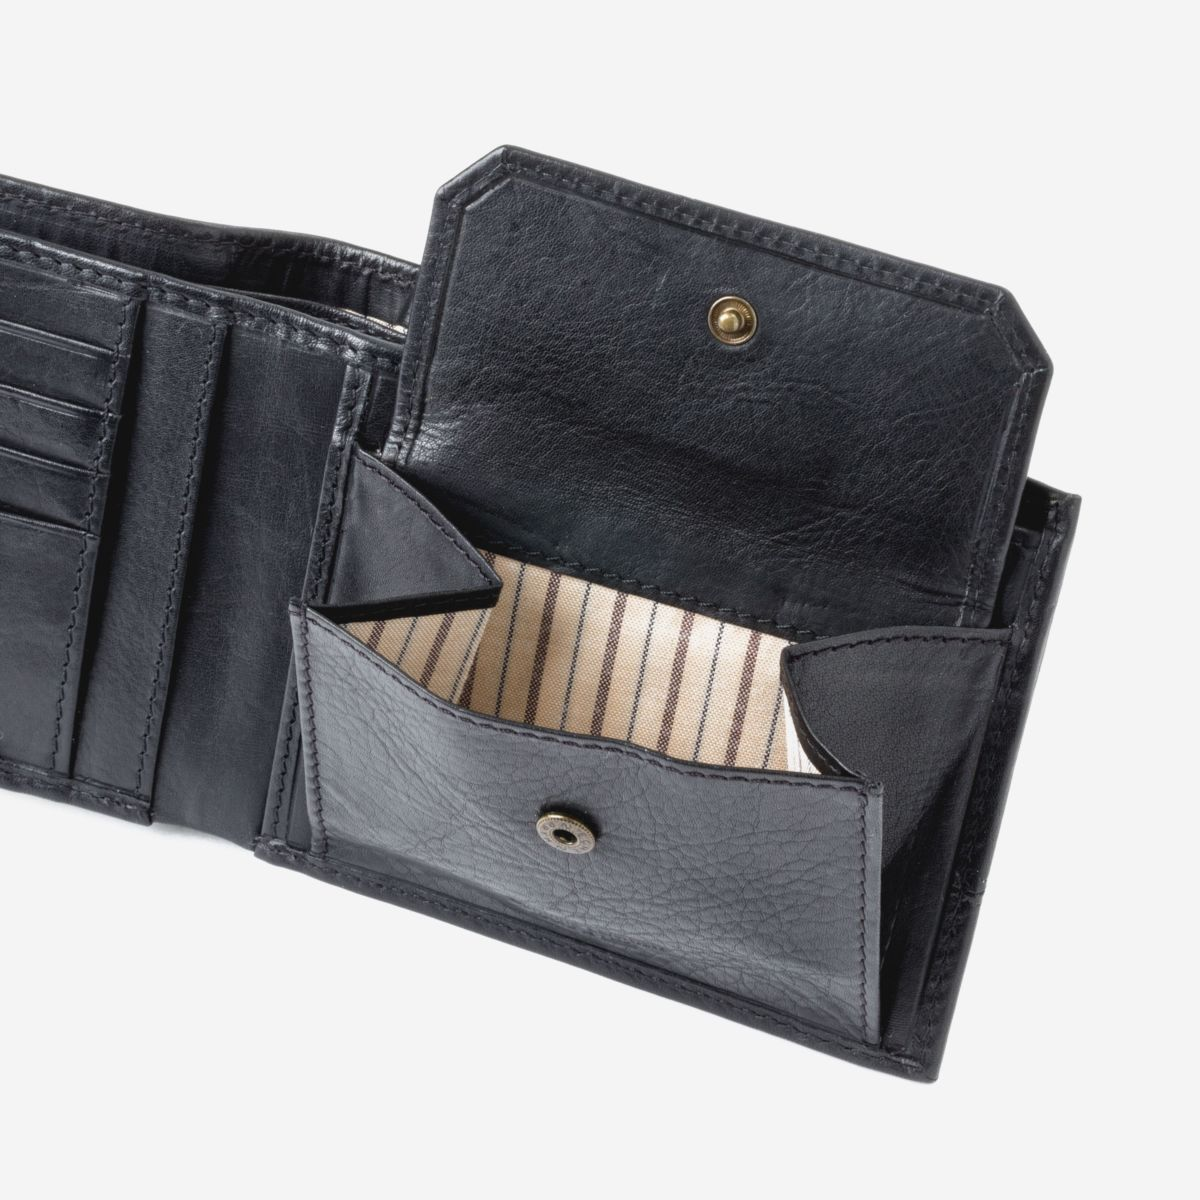 DuDu Mens Leather Wallet with Coin Pocket - Black